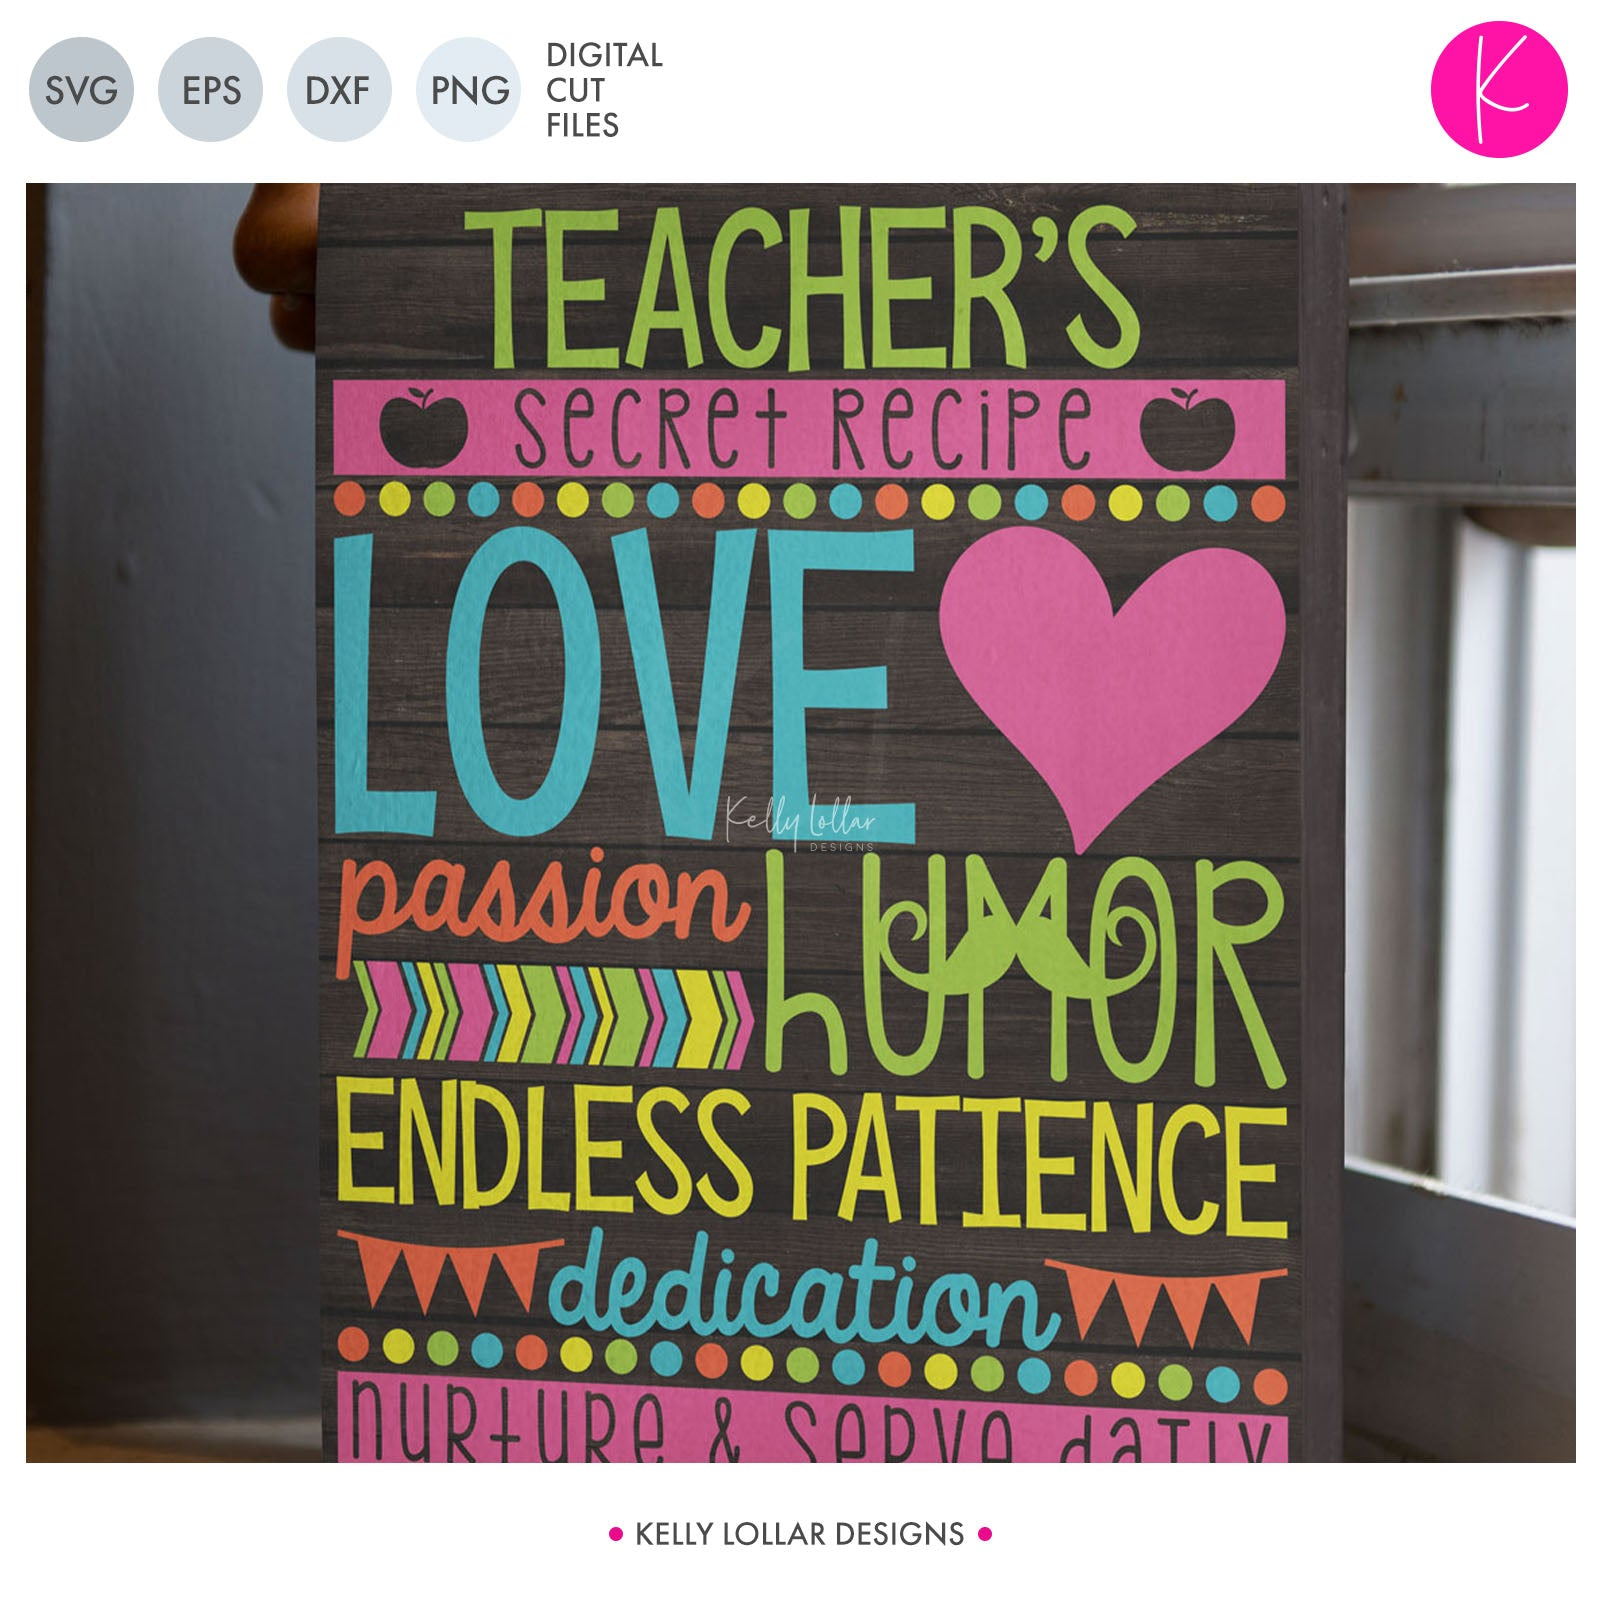 Teacher's Secret Recipe | SVG DXF EPS PNG Cut Files Teacher Appreciation Design with a List of What Makes Her Awesome | SVG DXF EPS PNG Cut Files Teacher Appreciation Design with a List of What Makes Her Awesome Includes